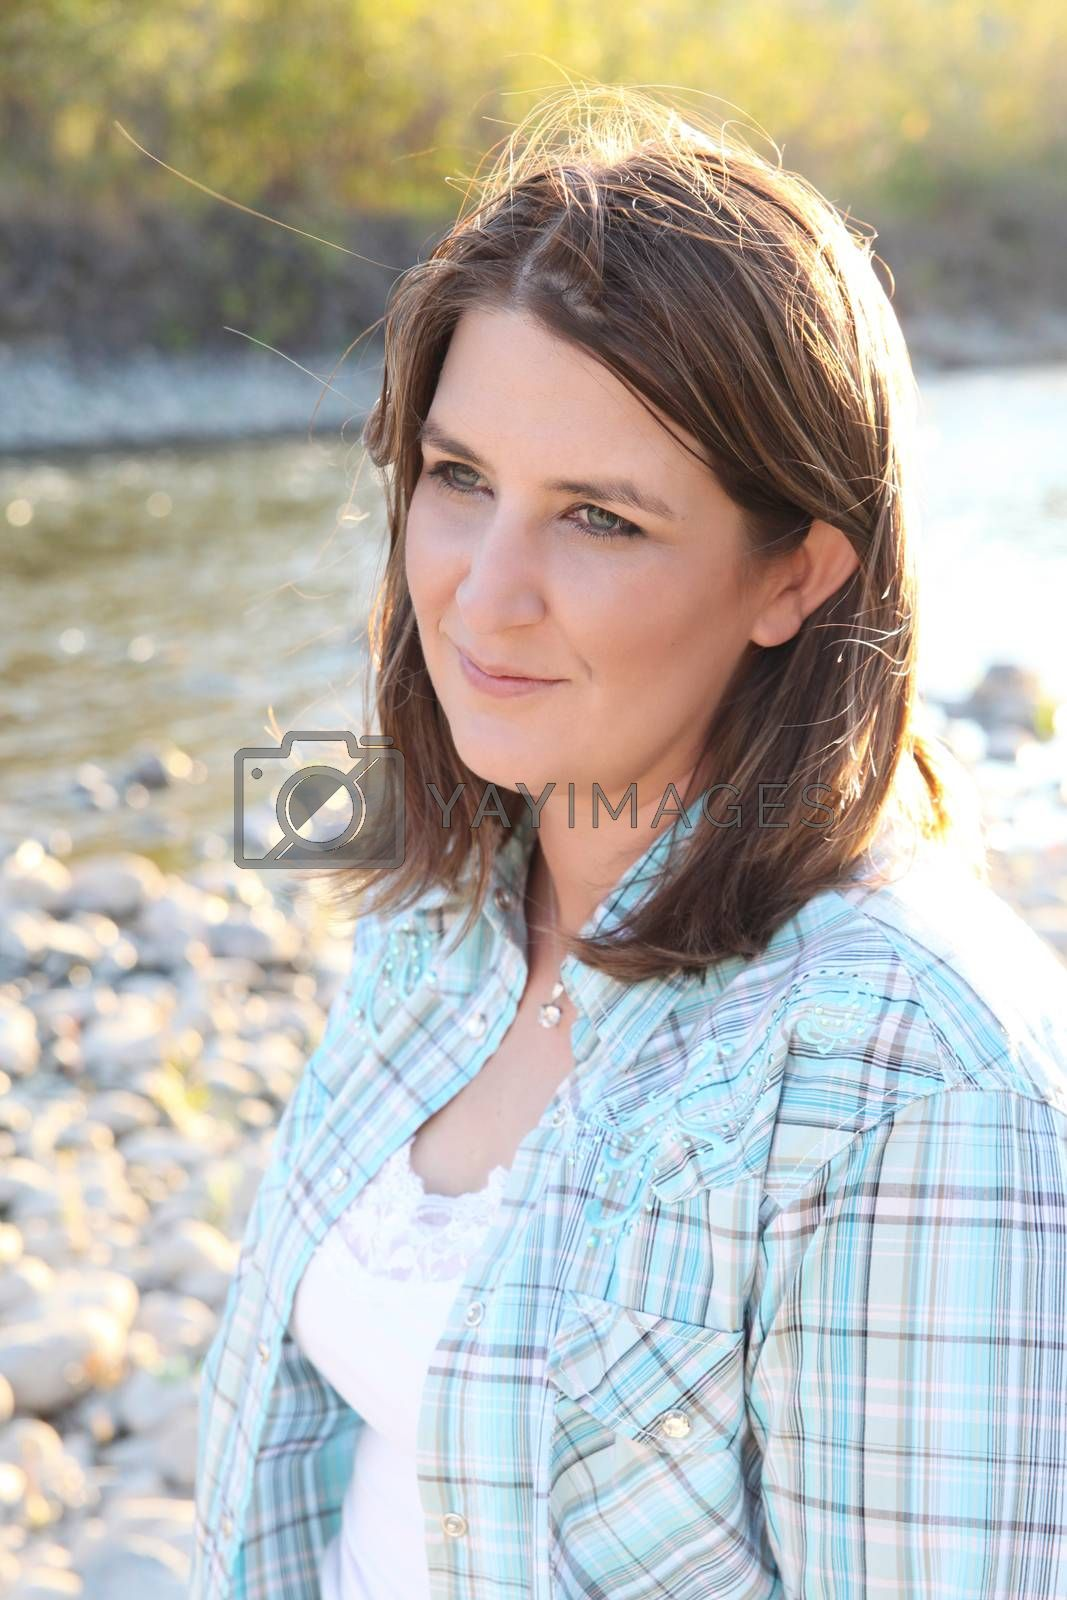 Adult female portraiture in natural light setting